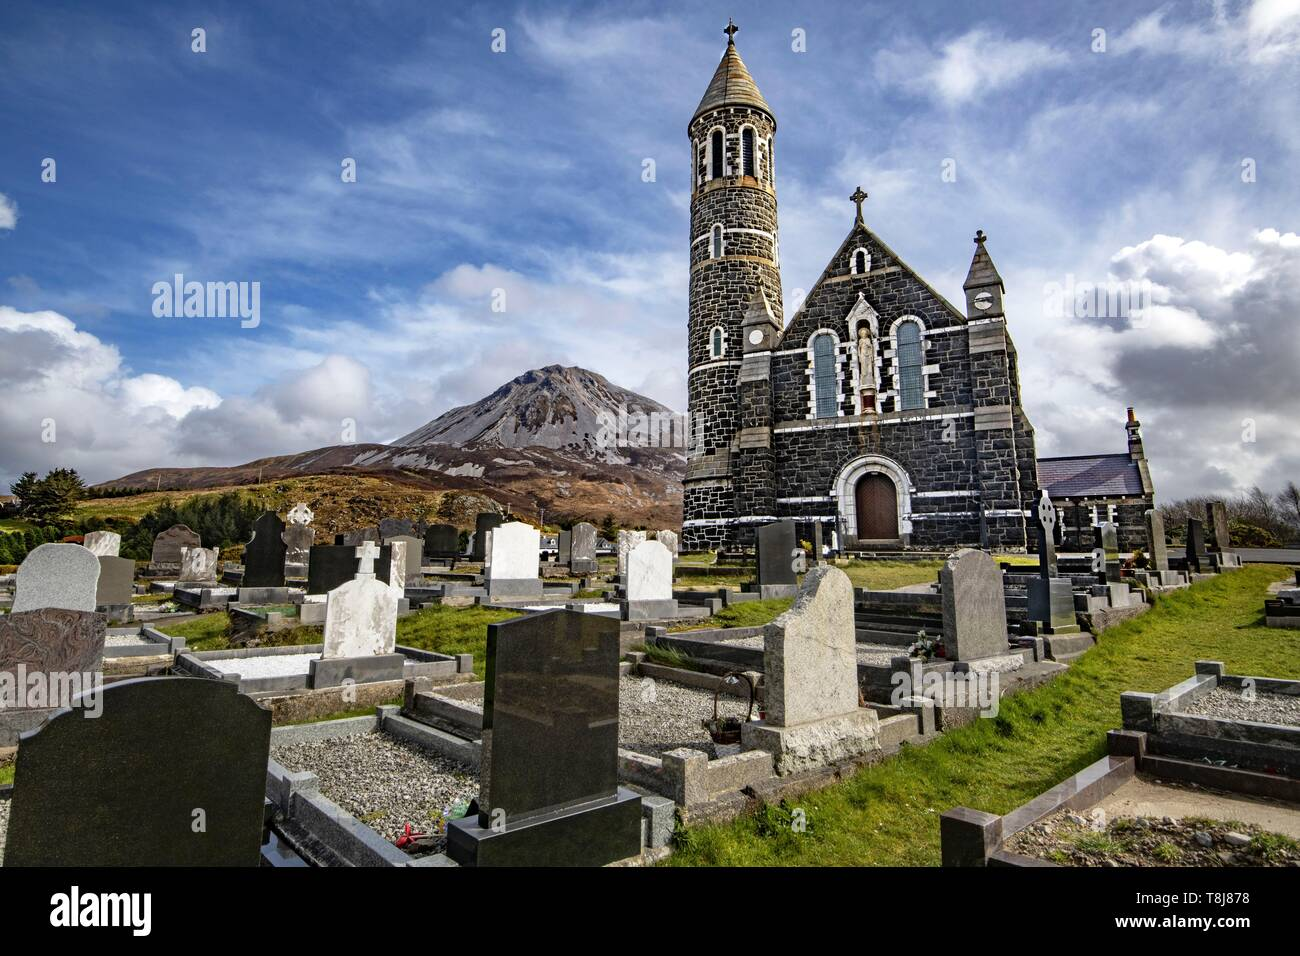 Ireland, County Donegal, Glenveagh National Park, Dunlewy, Sacred Heart catholic church - Stock Image